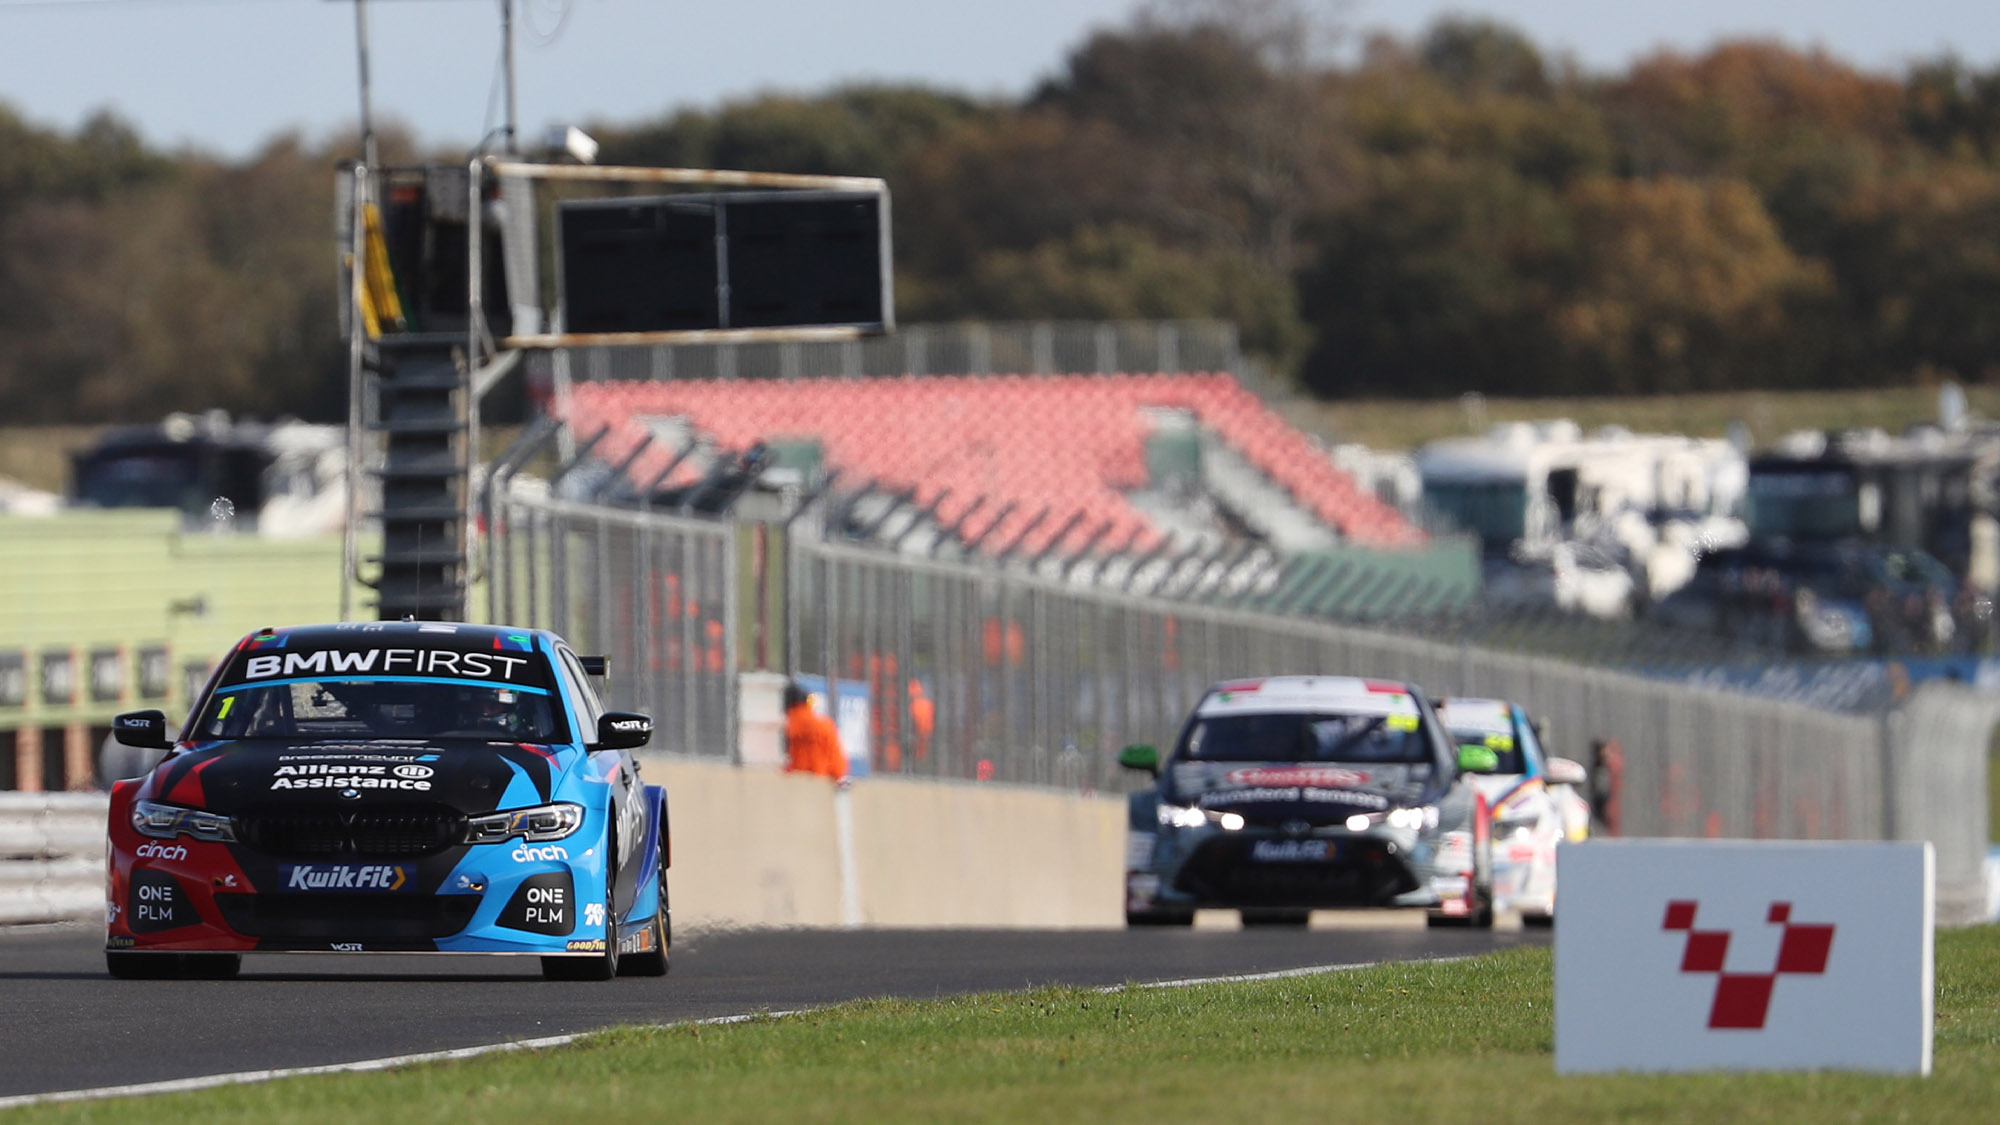 Colin Turkington leads Tom Ingram and Jake Hill at Snetterton in the 2020 BTCC round